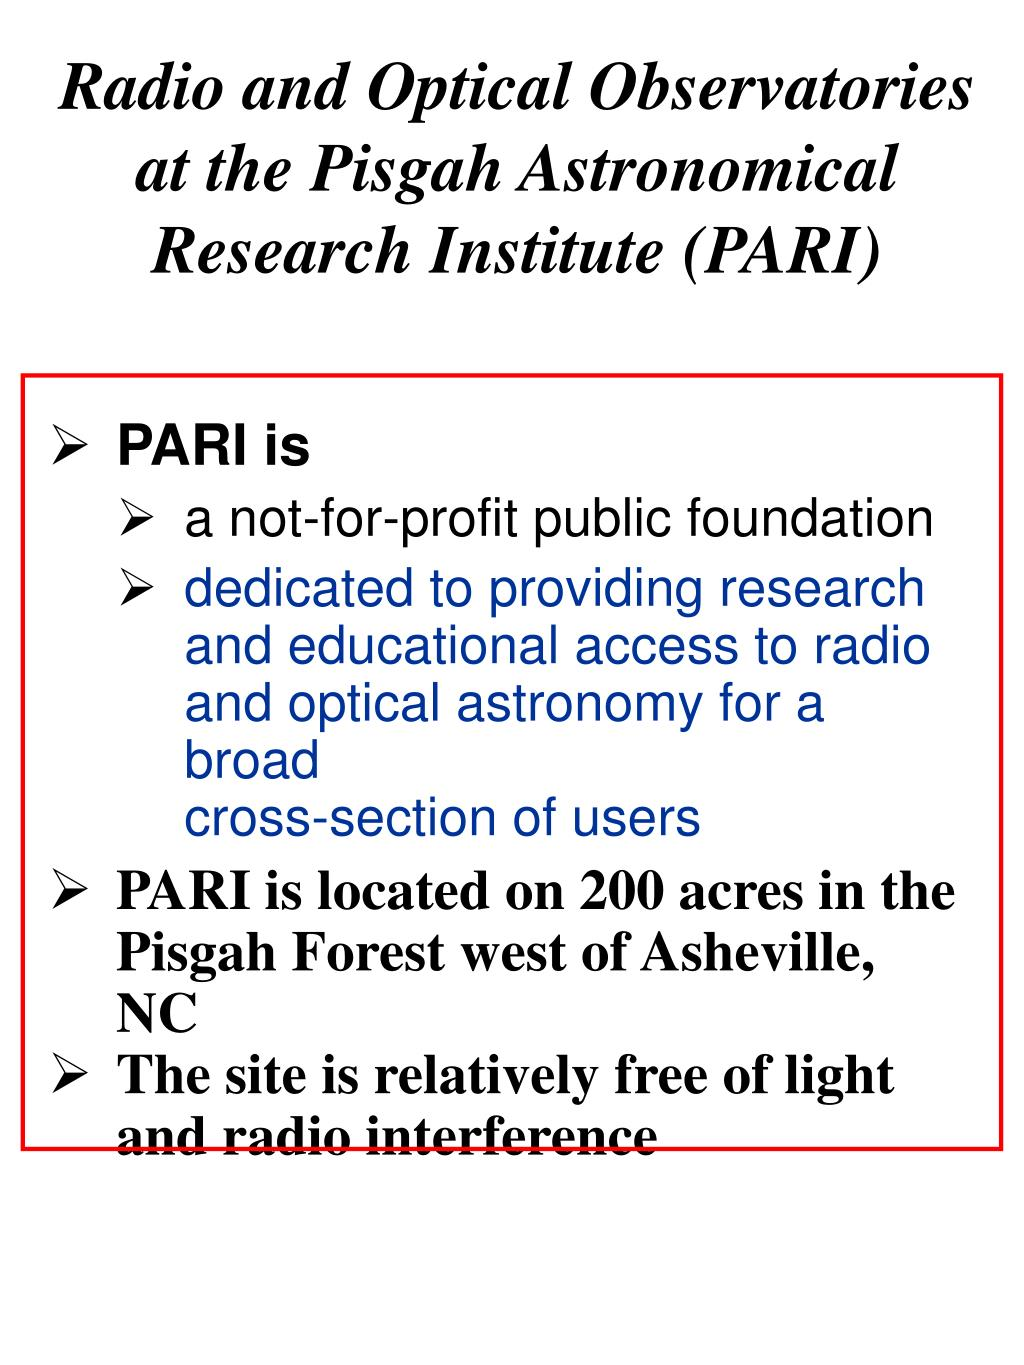 Radio and Optical Observatories at the Pisgah Astronomical Research Institute (PARI)